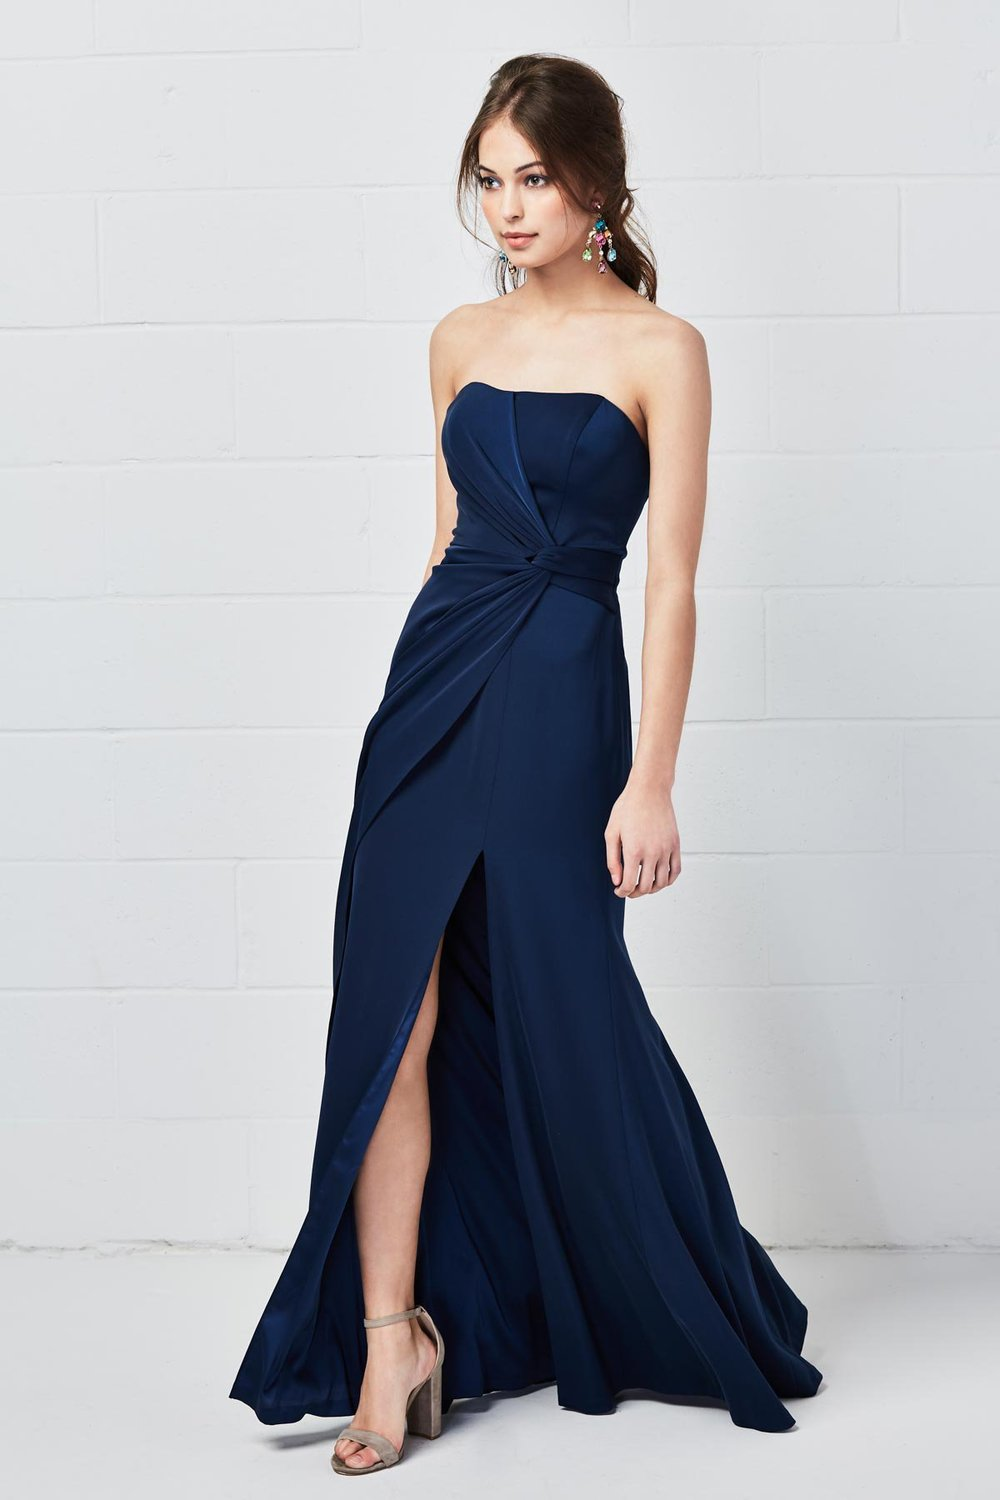 Watters Bridesmaids Style 5802 Rayden in Navy Blue bellessa stretch crepe at Gilded Social